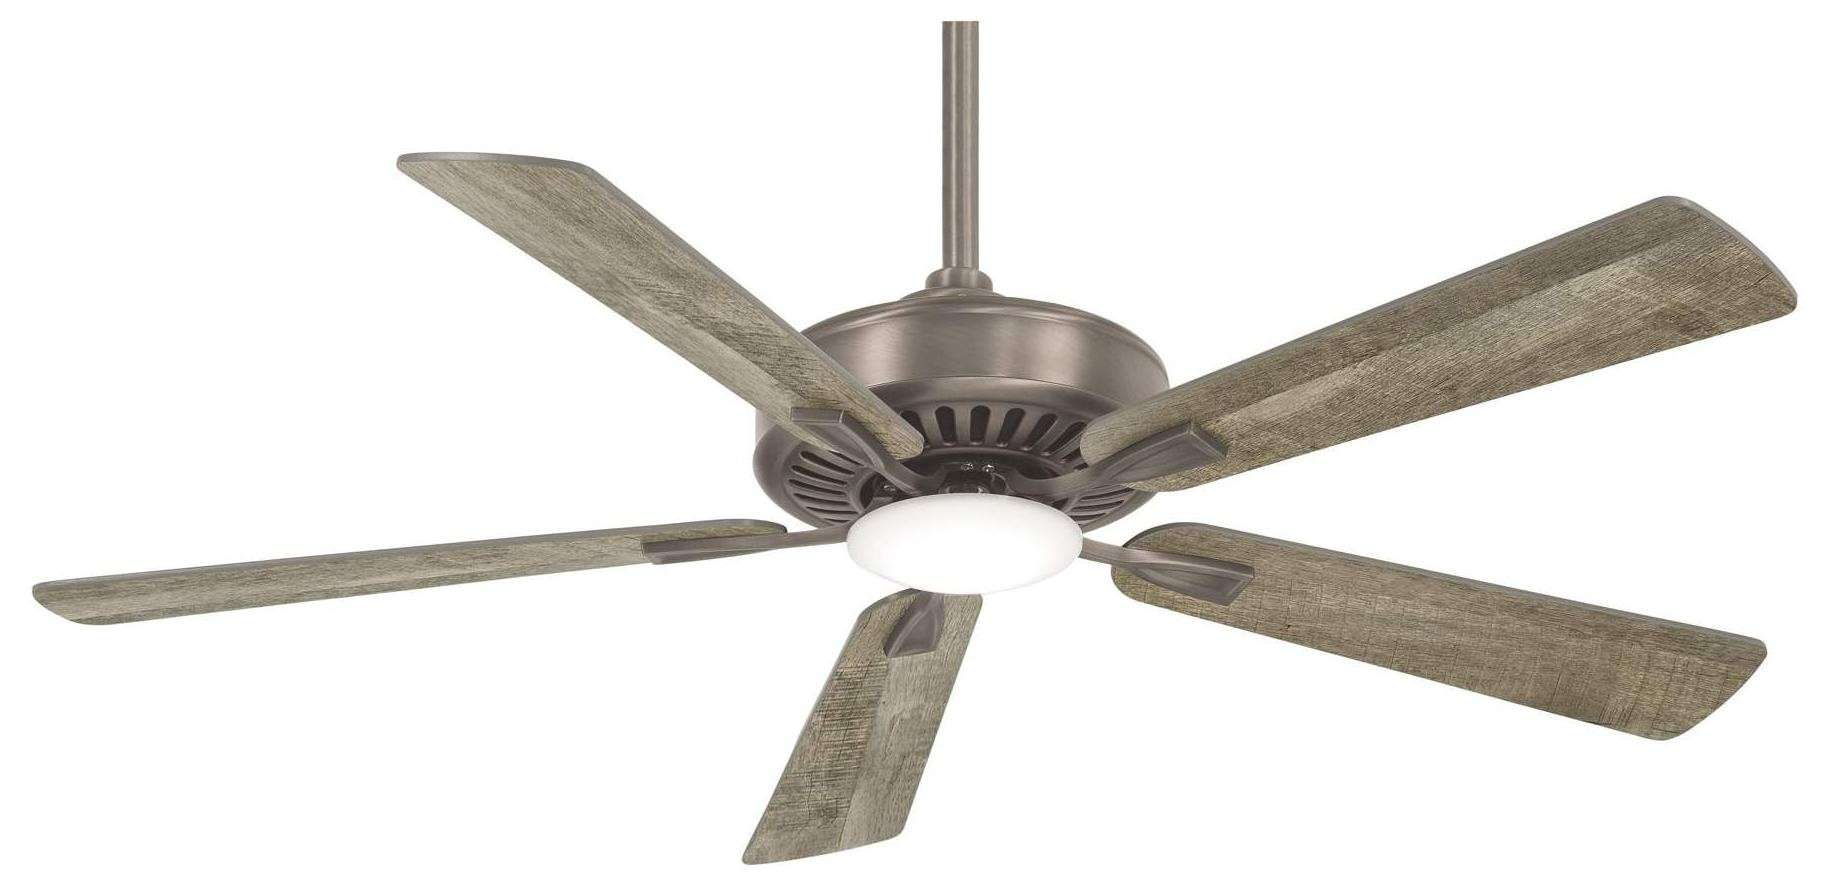 Minka Aire Contractor Plus LED Ceiling Fan Model F556L-BNK in Burnished Nickel